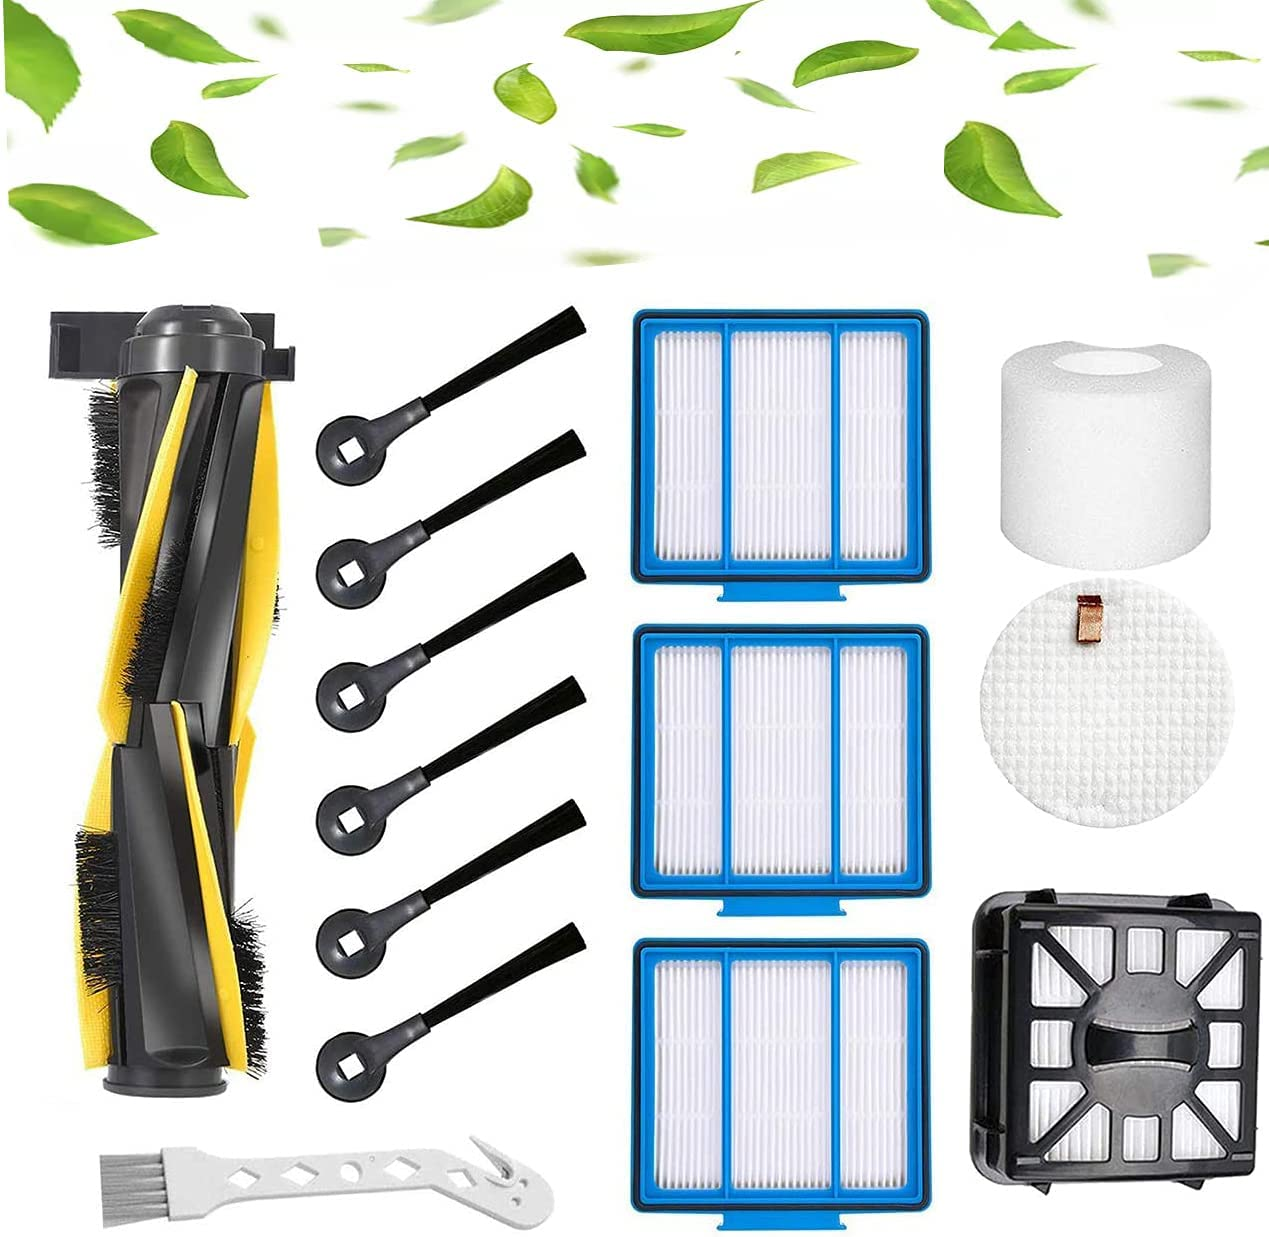 1 Set Shark Free Shipping Cheap Bargain Gift Replacement wholesale Part Kit Accessories R101AE RV1001AE IQ